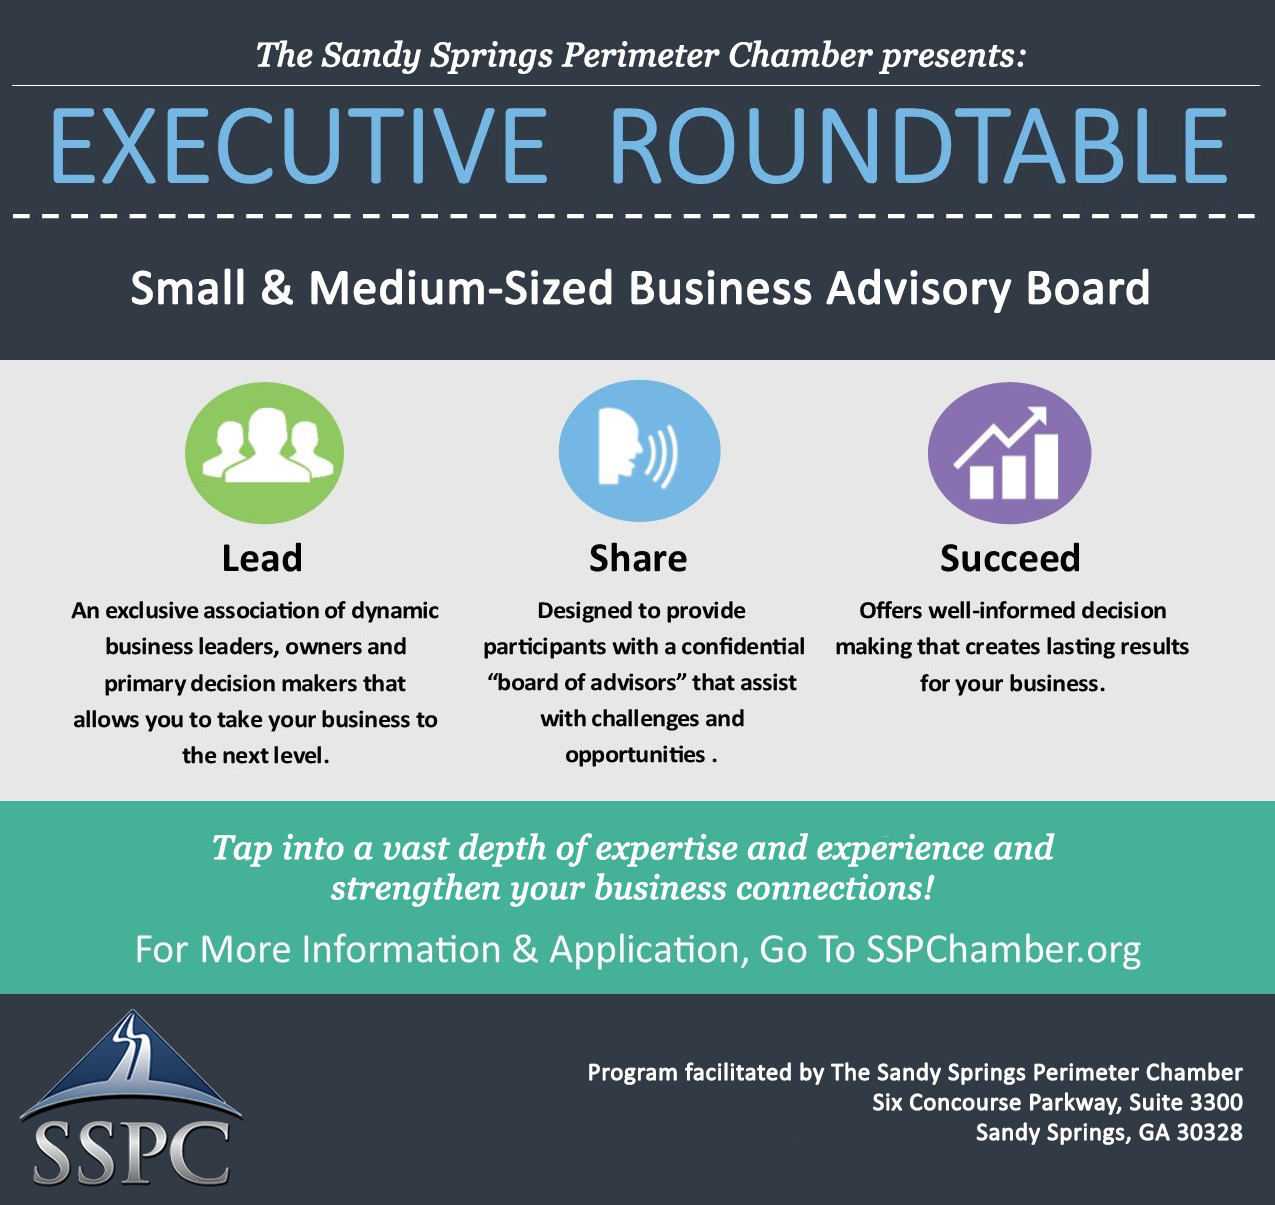 2017 Executive Roundtable Graphic